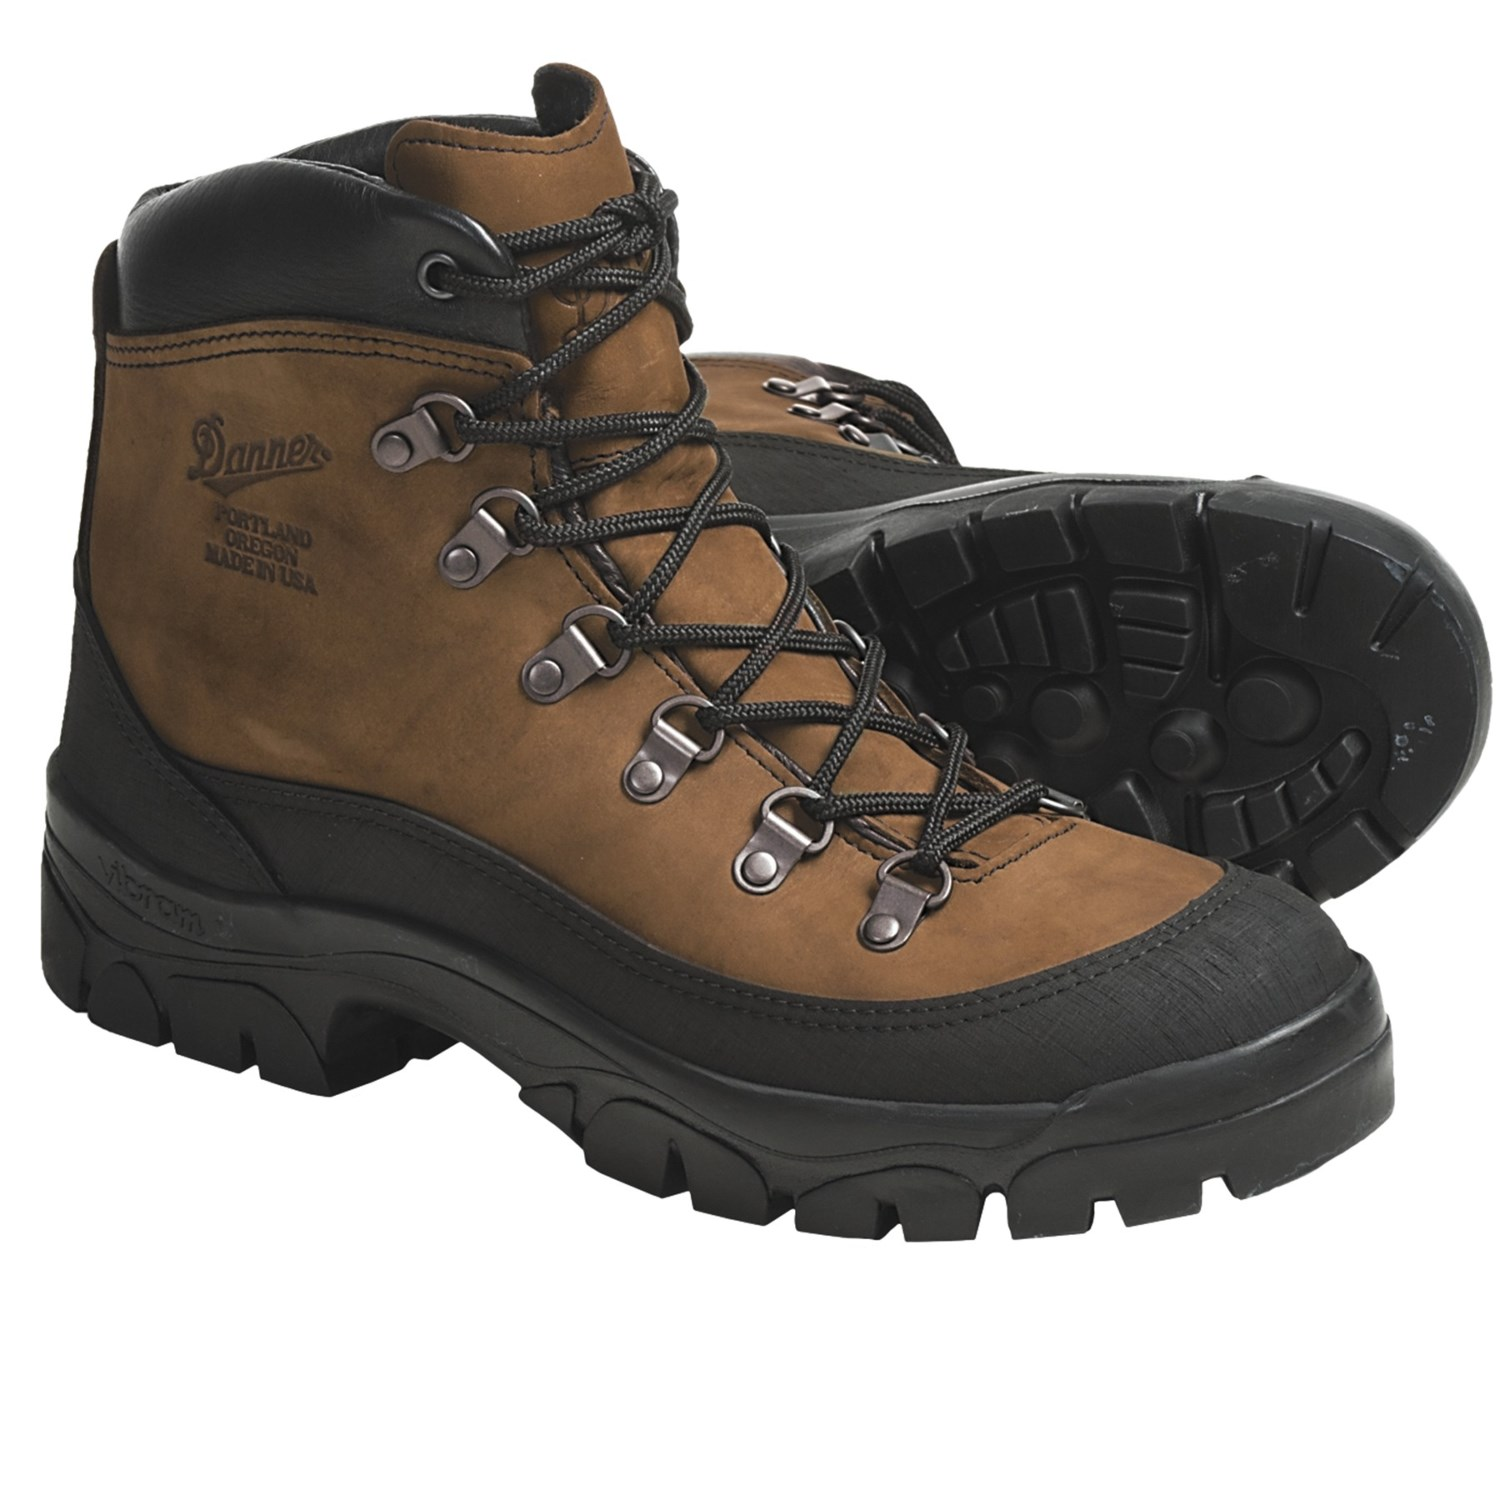 Military Boots - Waterproof, Leather (For Men and Women) in Brown